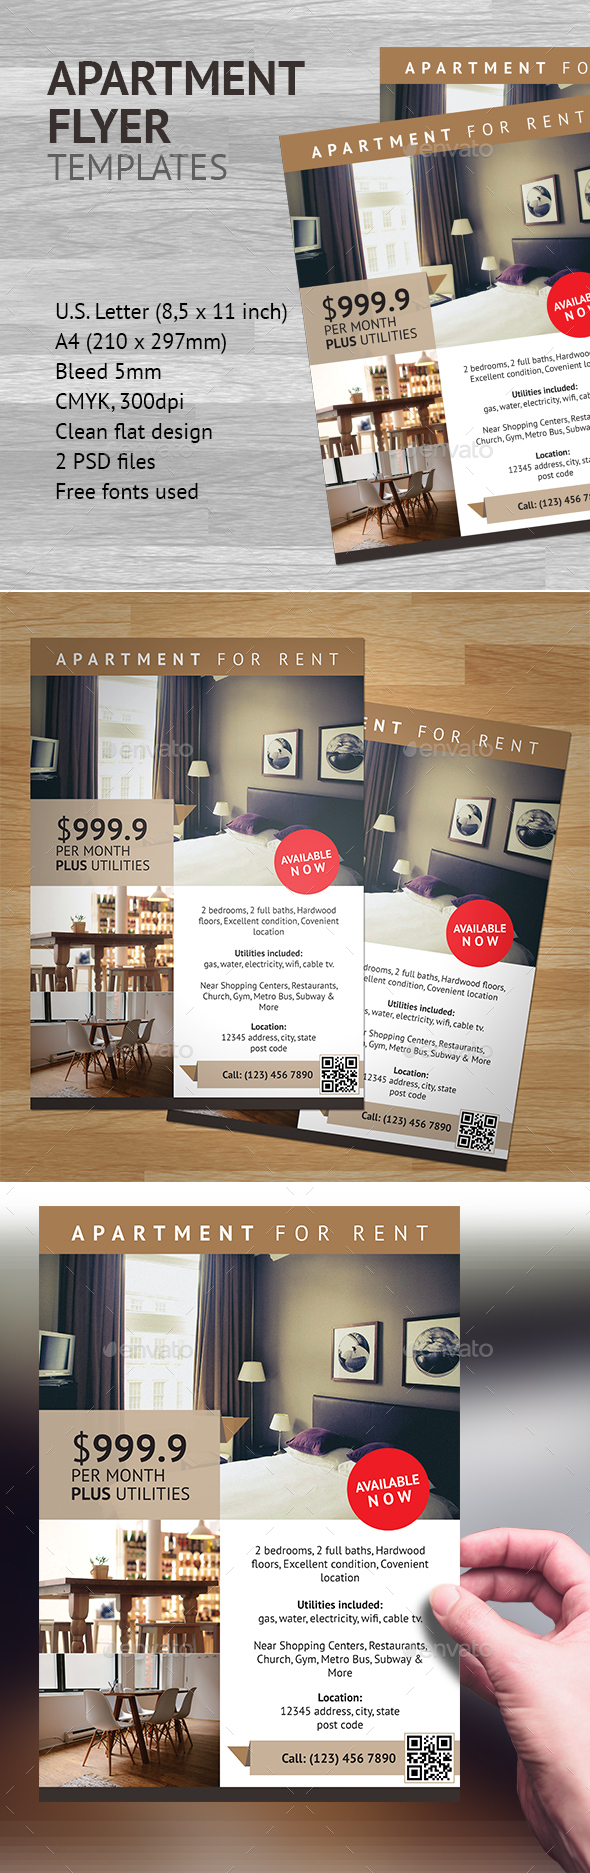 Apartment Flyer Template 1 - Commerce Flyers